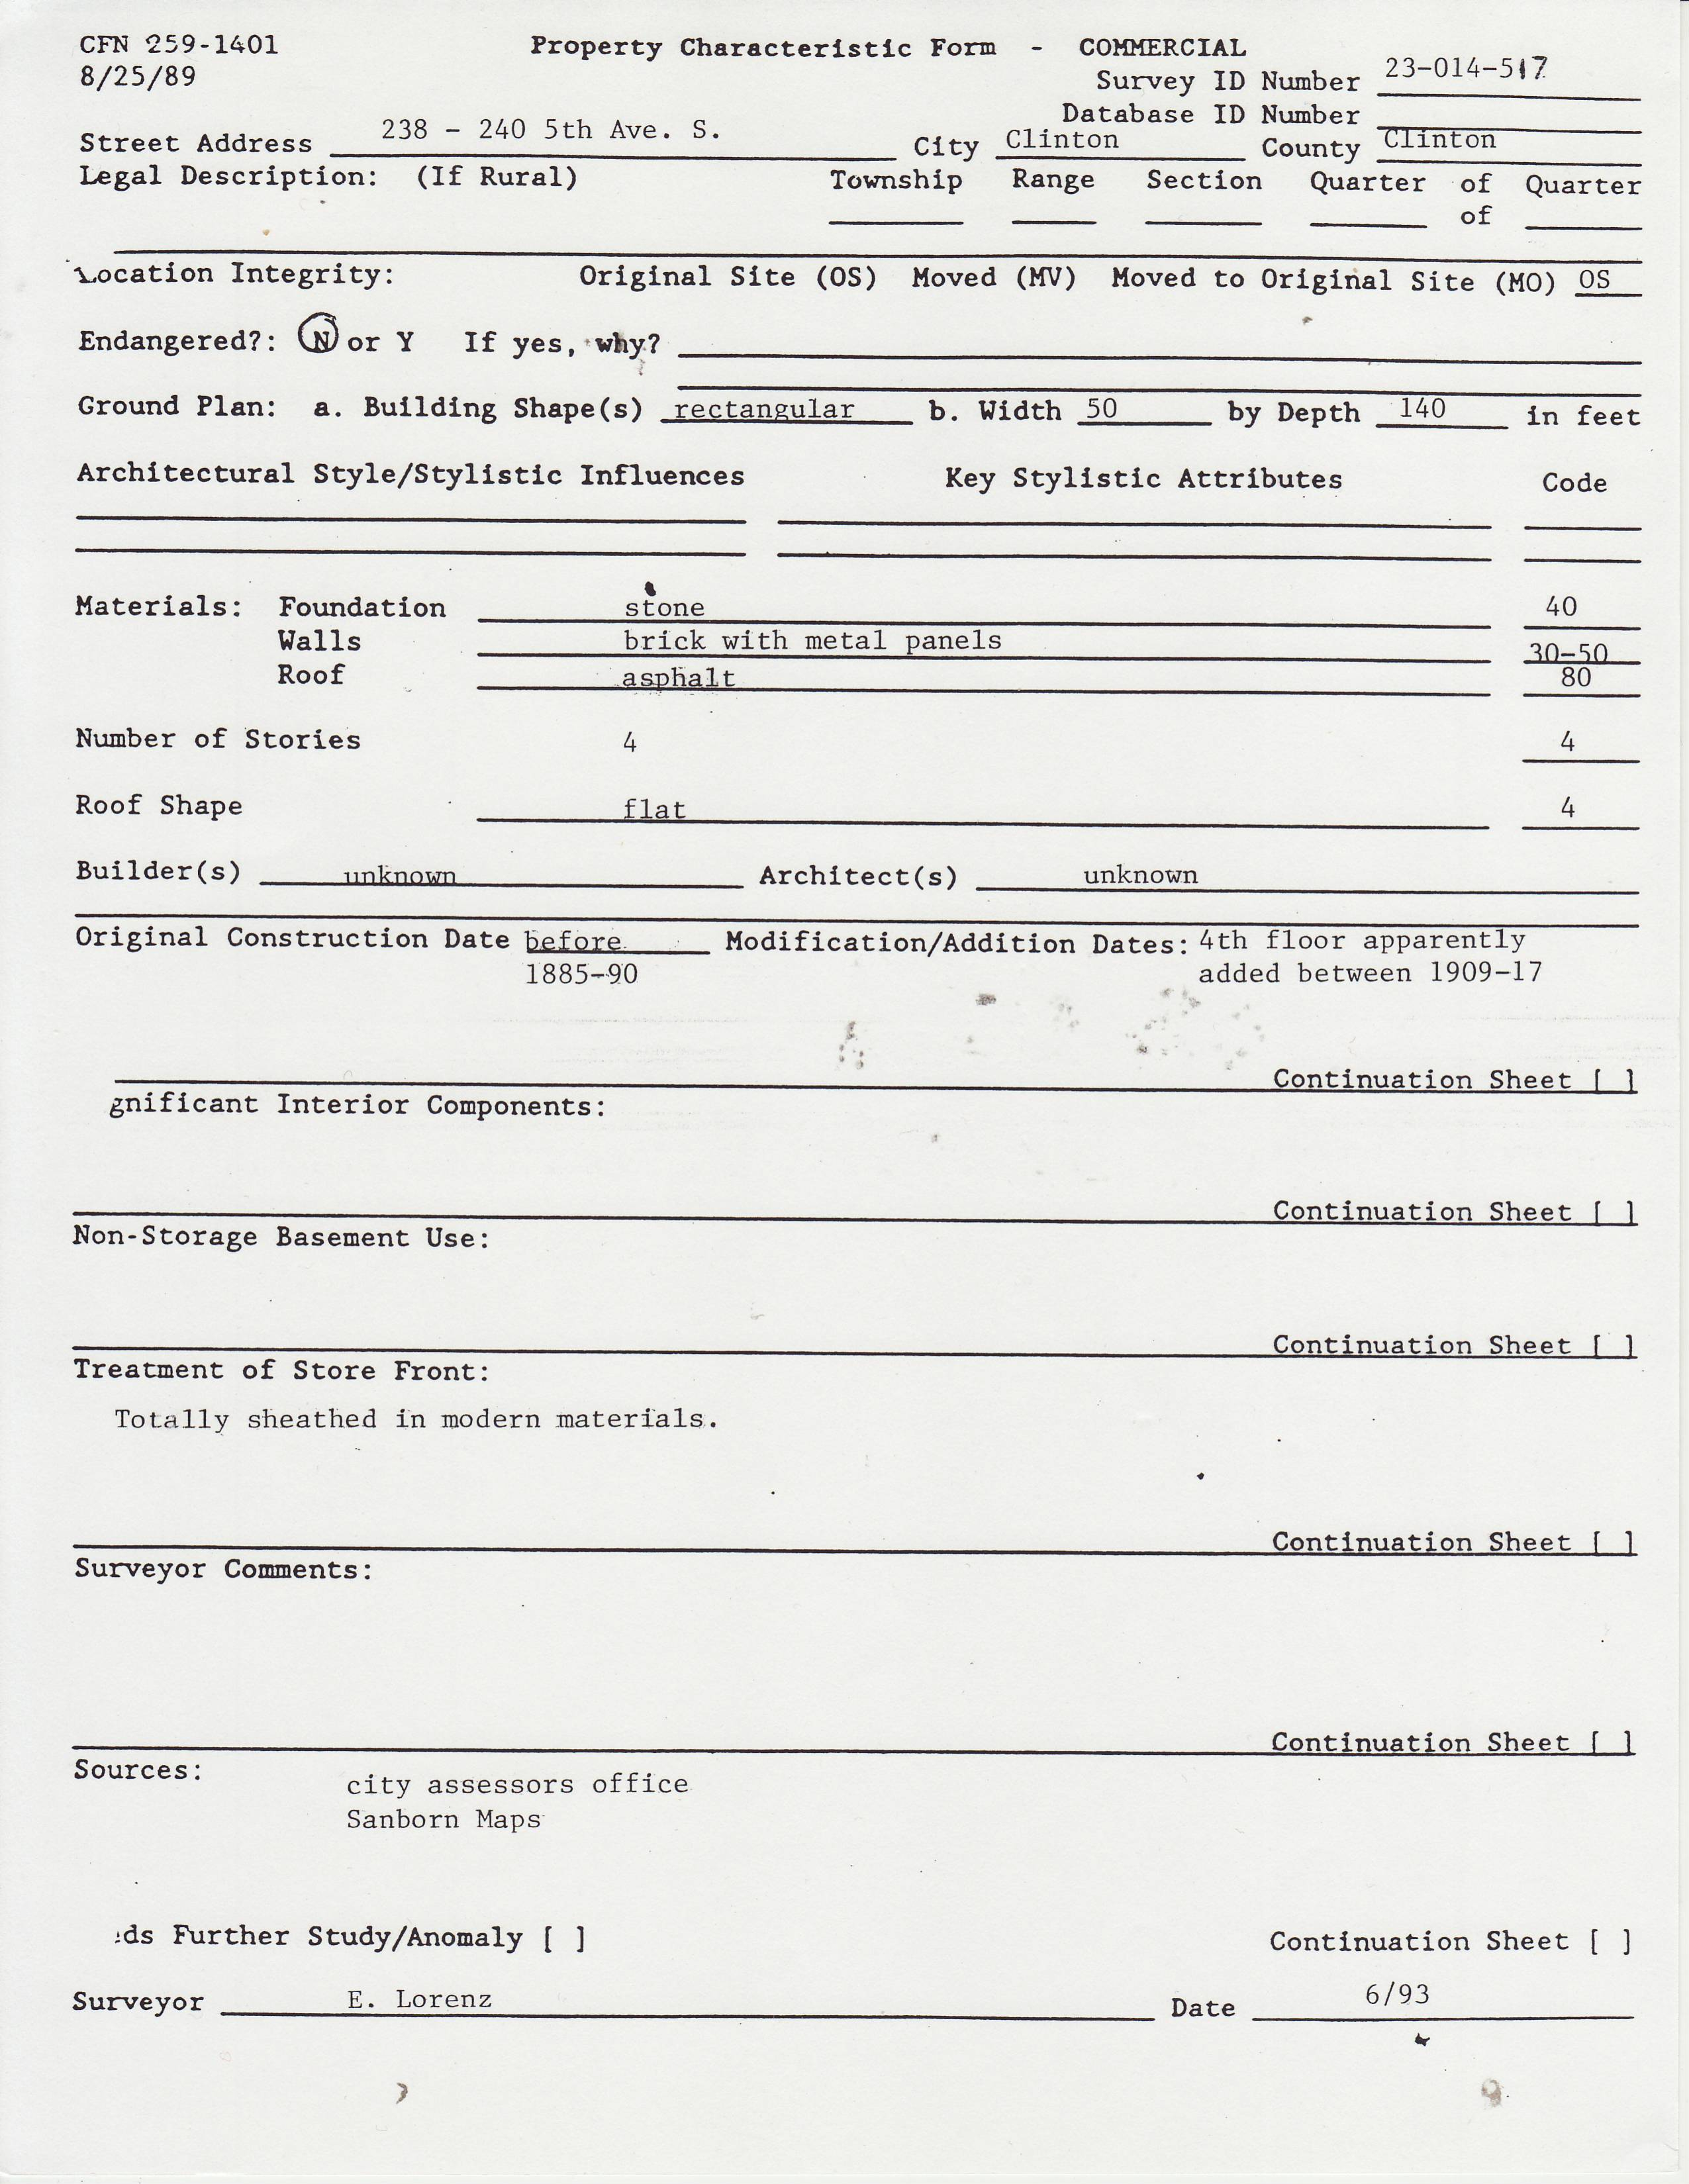 Probate Inventory Form 706